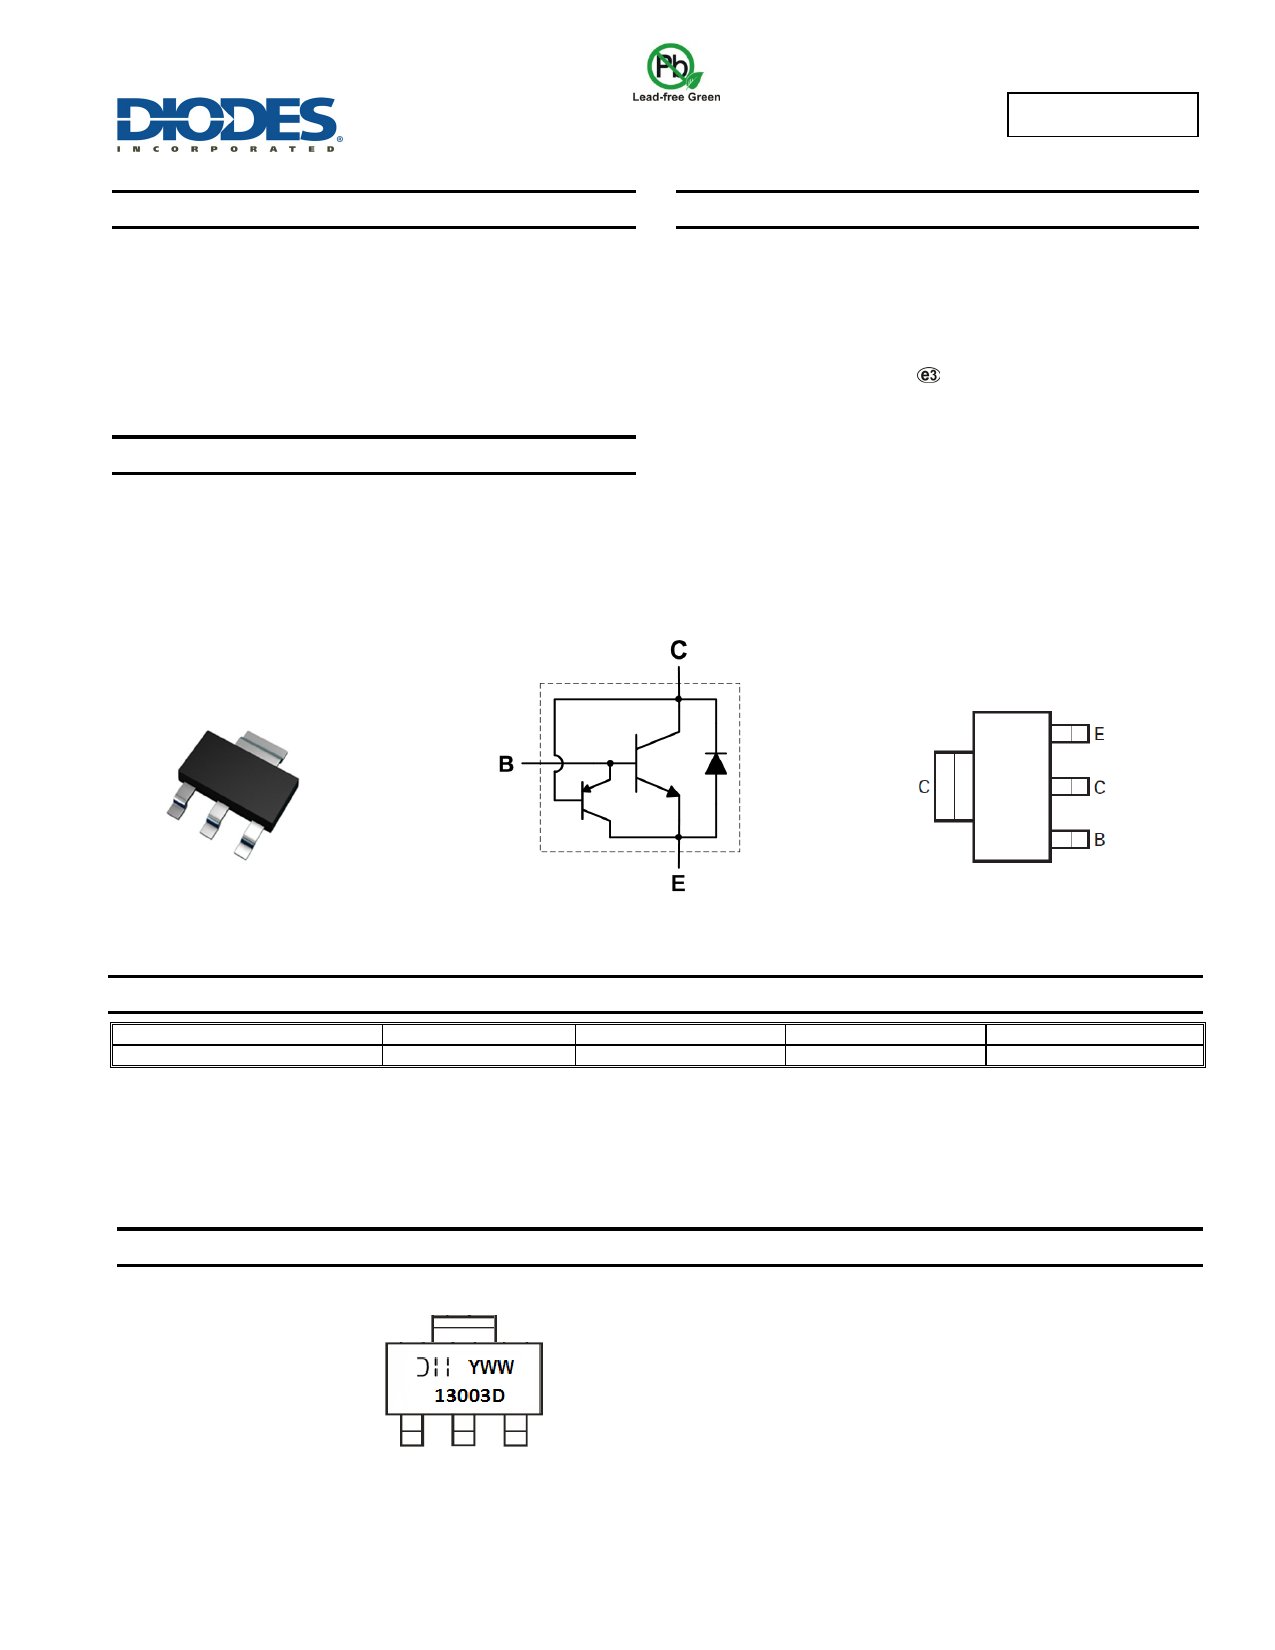 555 Timer Icblock Diagramworkingpin Out Configurationdata Sheet